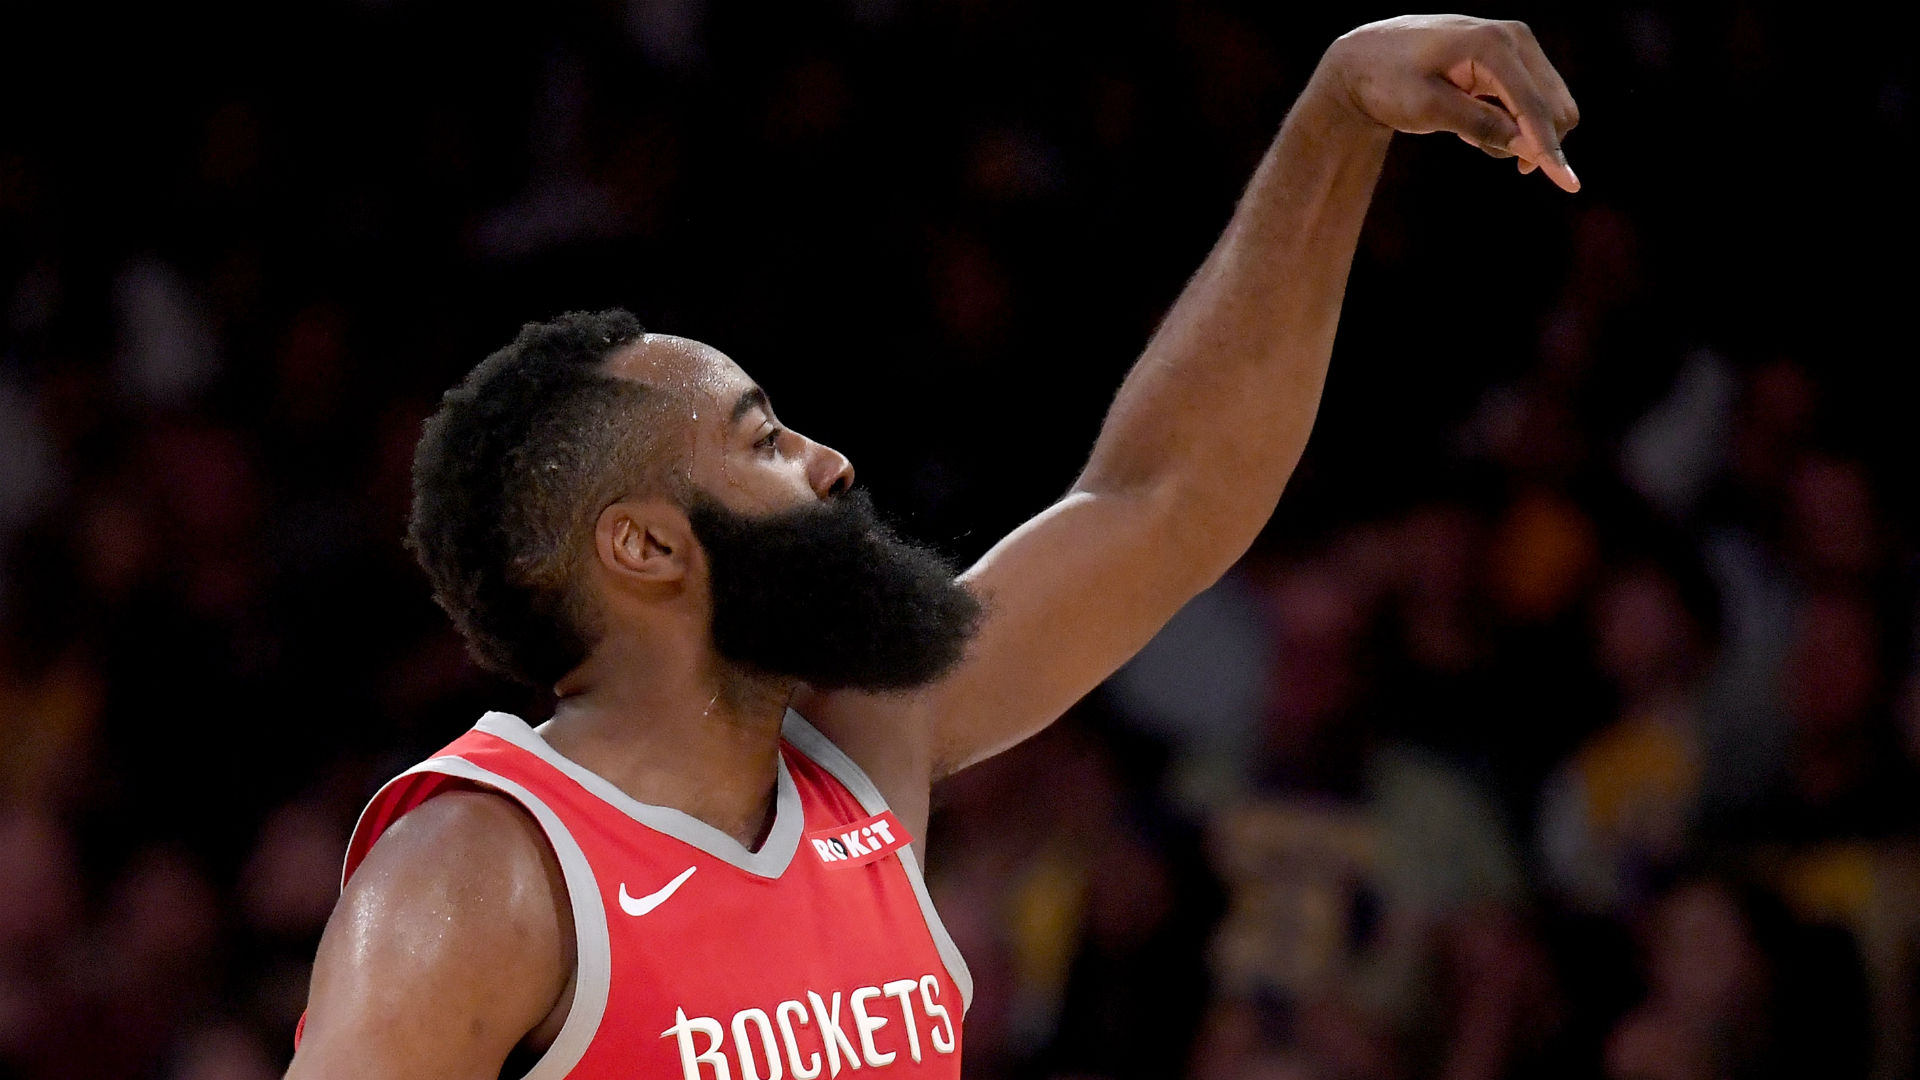 Harden drops 57 to lift Rockets over Grizzlies